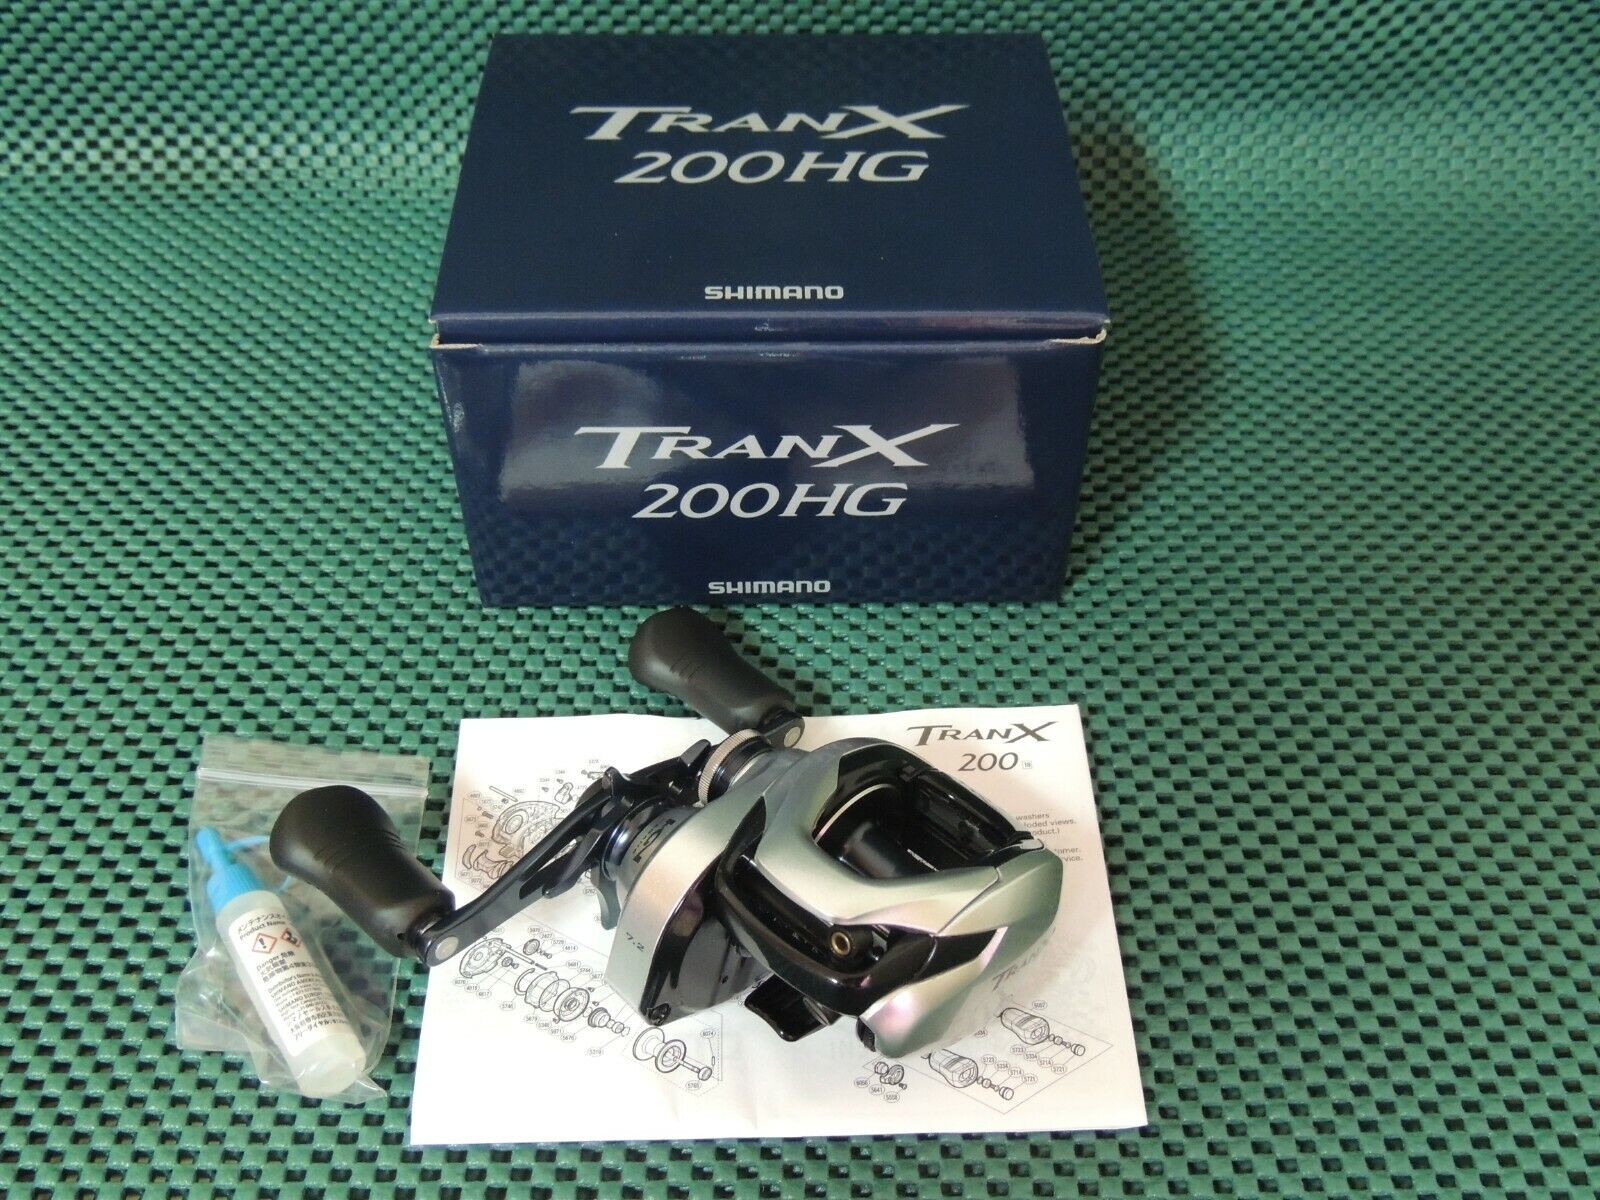 NEW Shimano Tranx 200HG Right Handle Baitcasting Reel 1-3 Days Fast Delivery